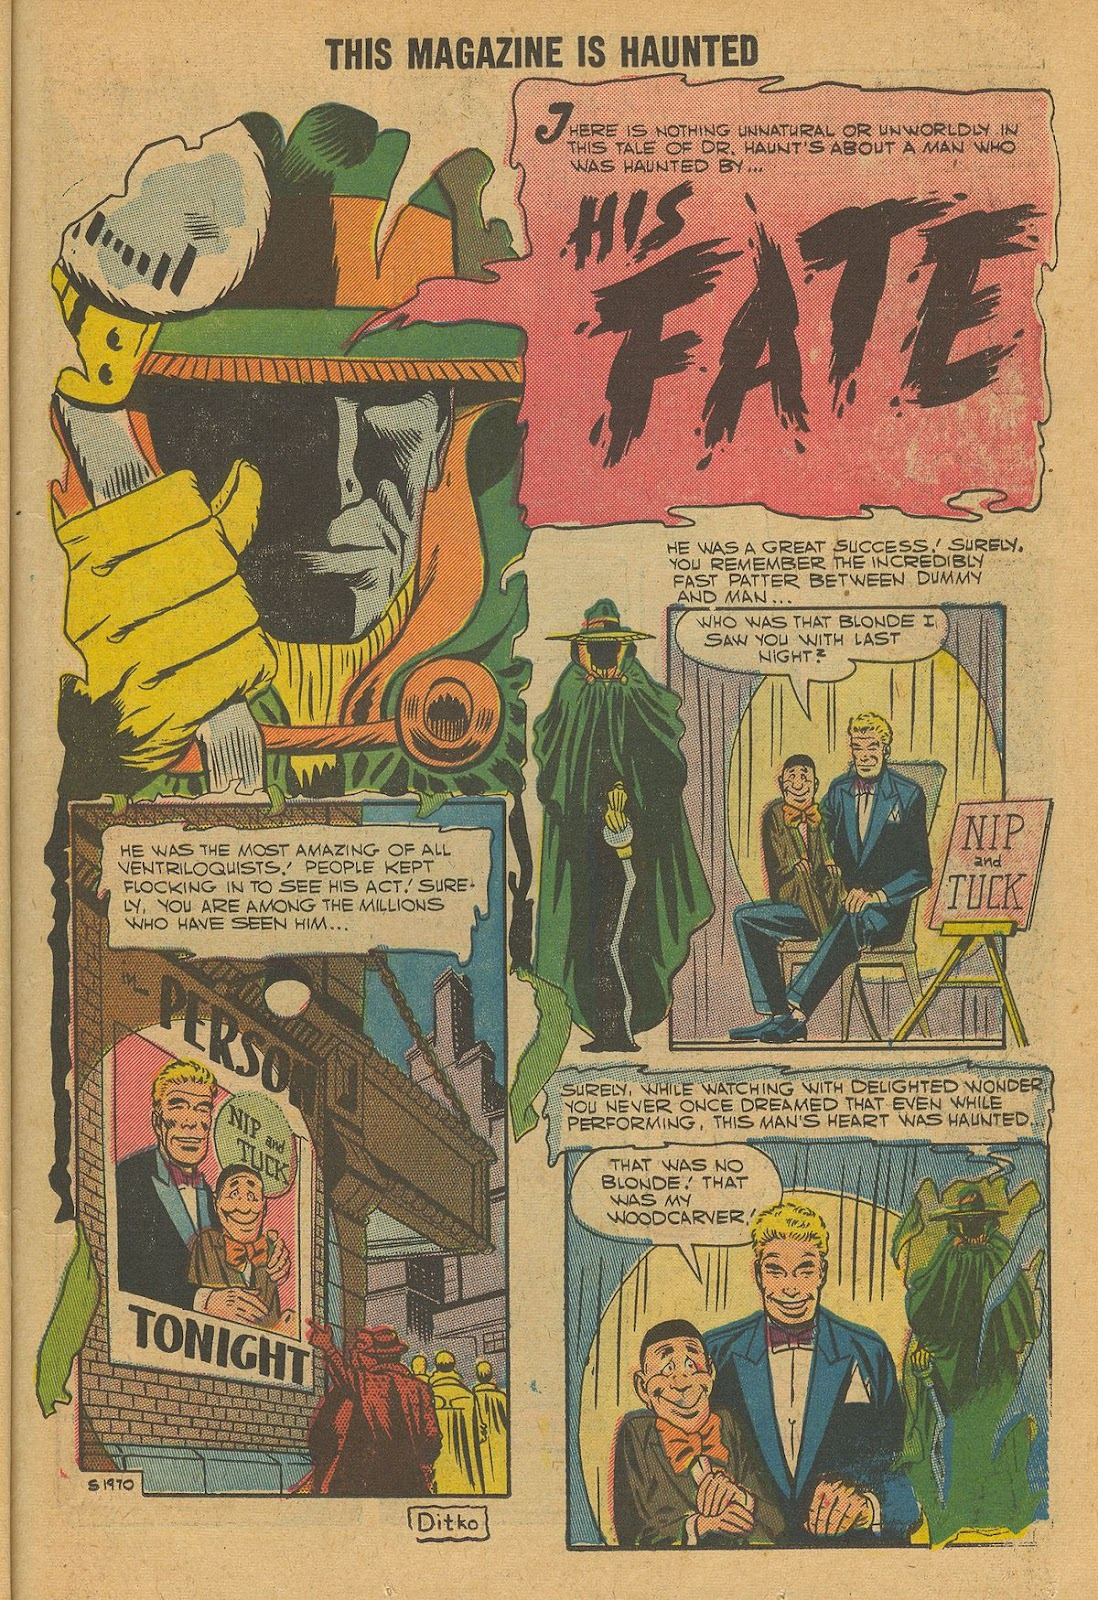 Read online This Magazine Is Haunted comic -  Issue #12 - 23